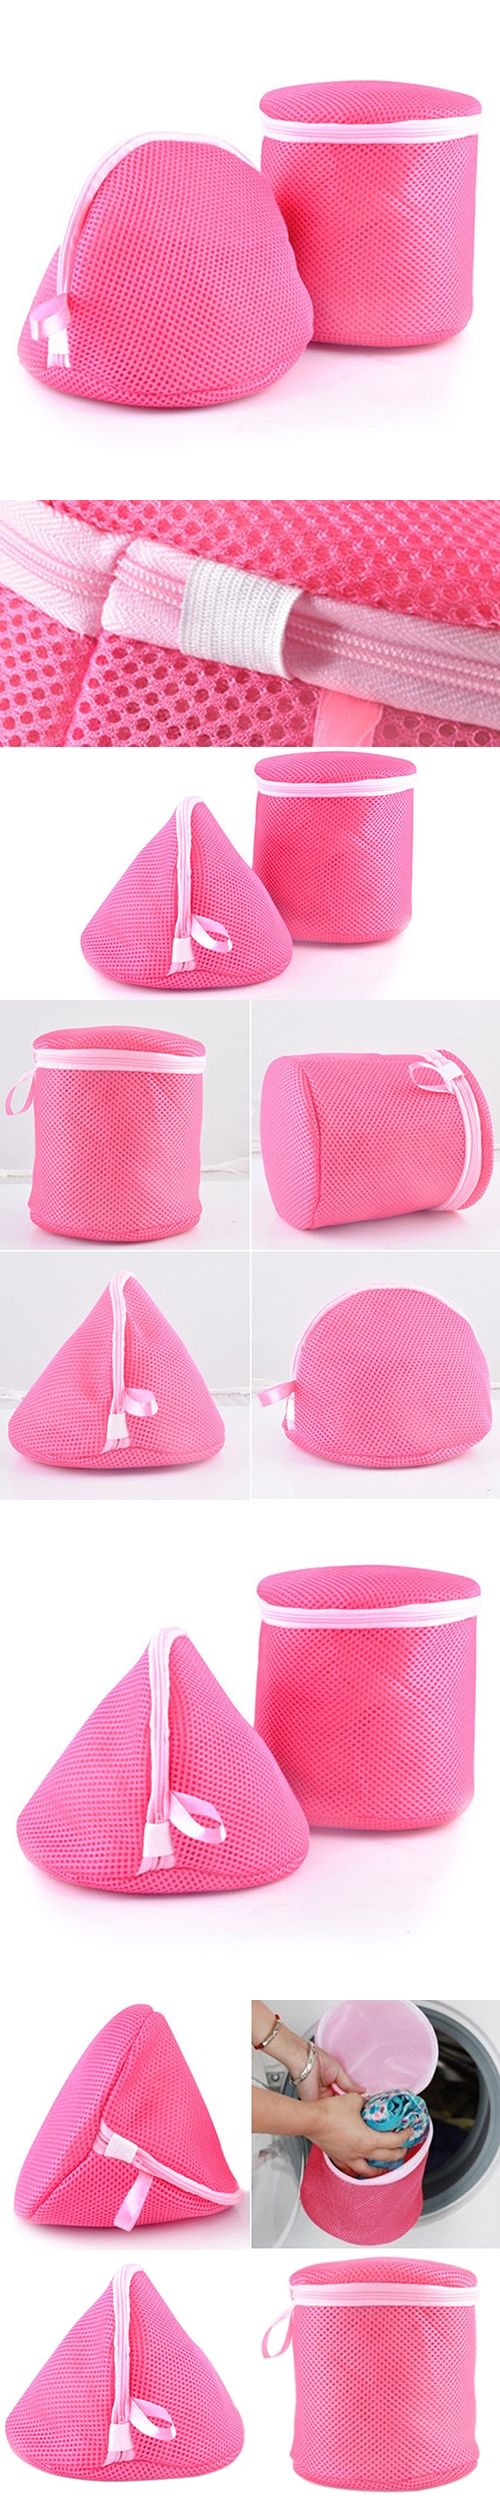 Underwear Aid Bra Laundry Mesh Wash Basket Net Washing Storage Zipper Bag Christmas  Gift  6LNS